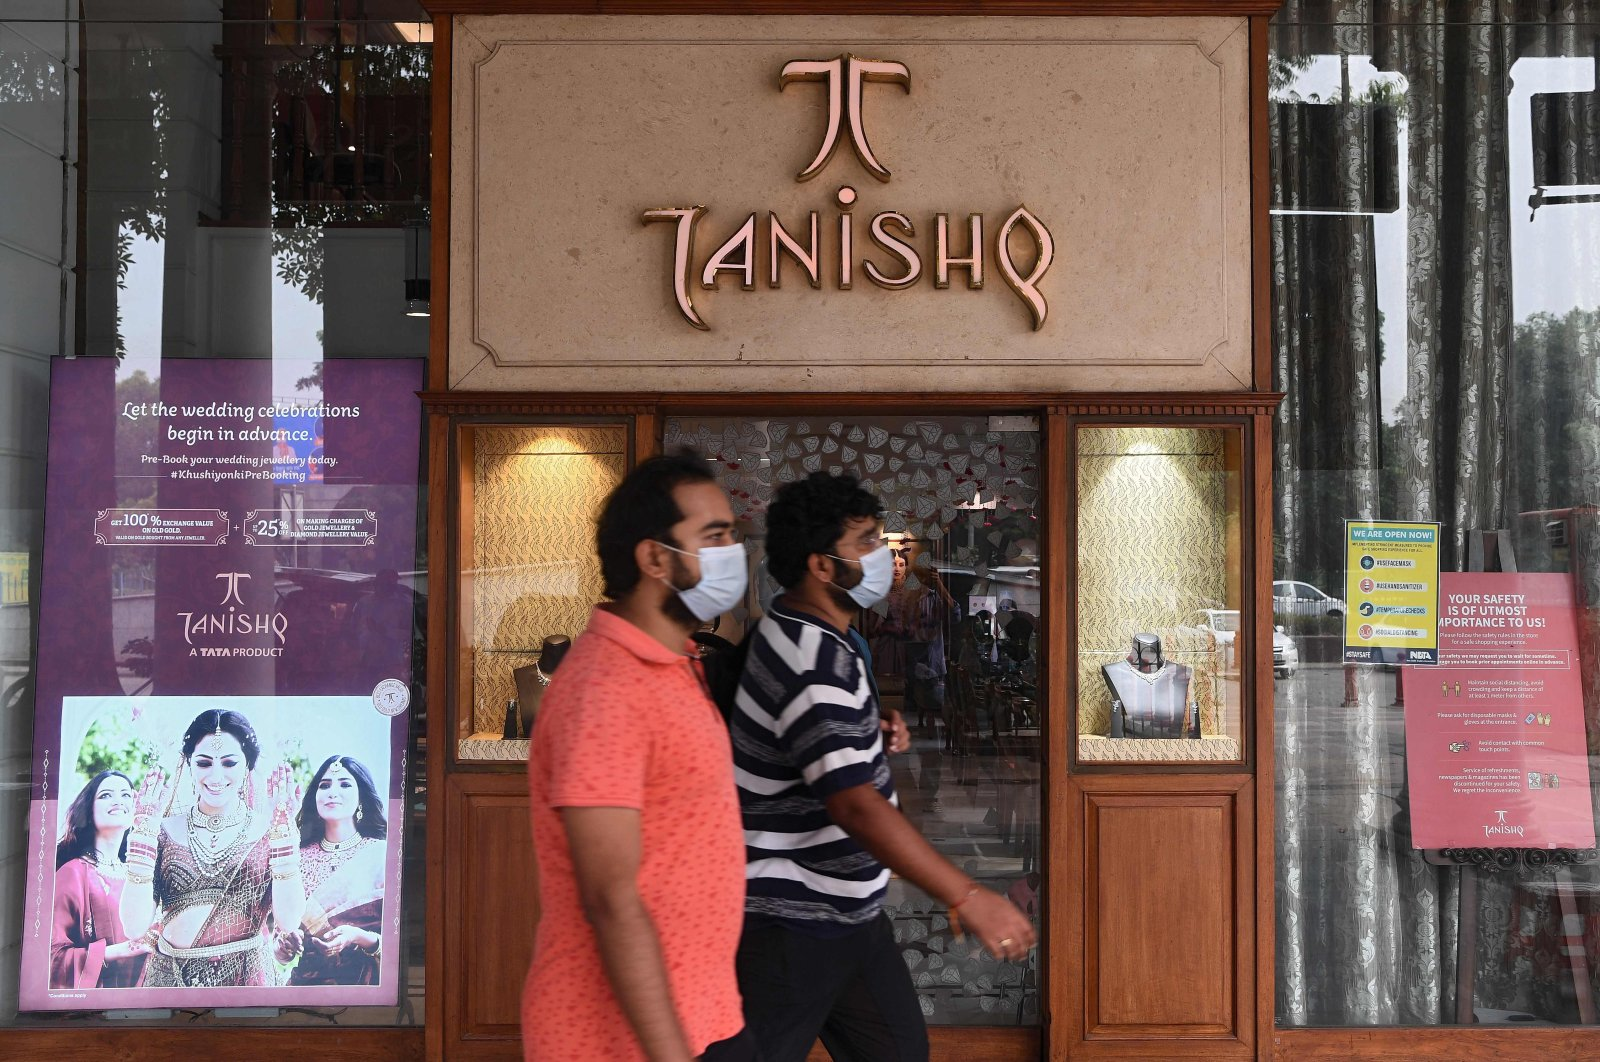 Men walk past a Tanishq jewelry showroom in a shopping arcade in New Delhi, India, Oct. 14, 2020. (AFP Photo)